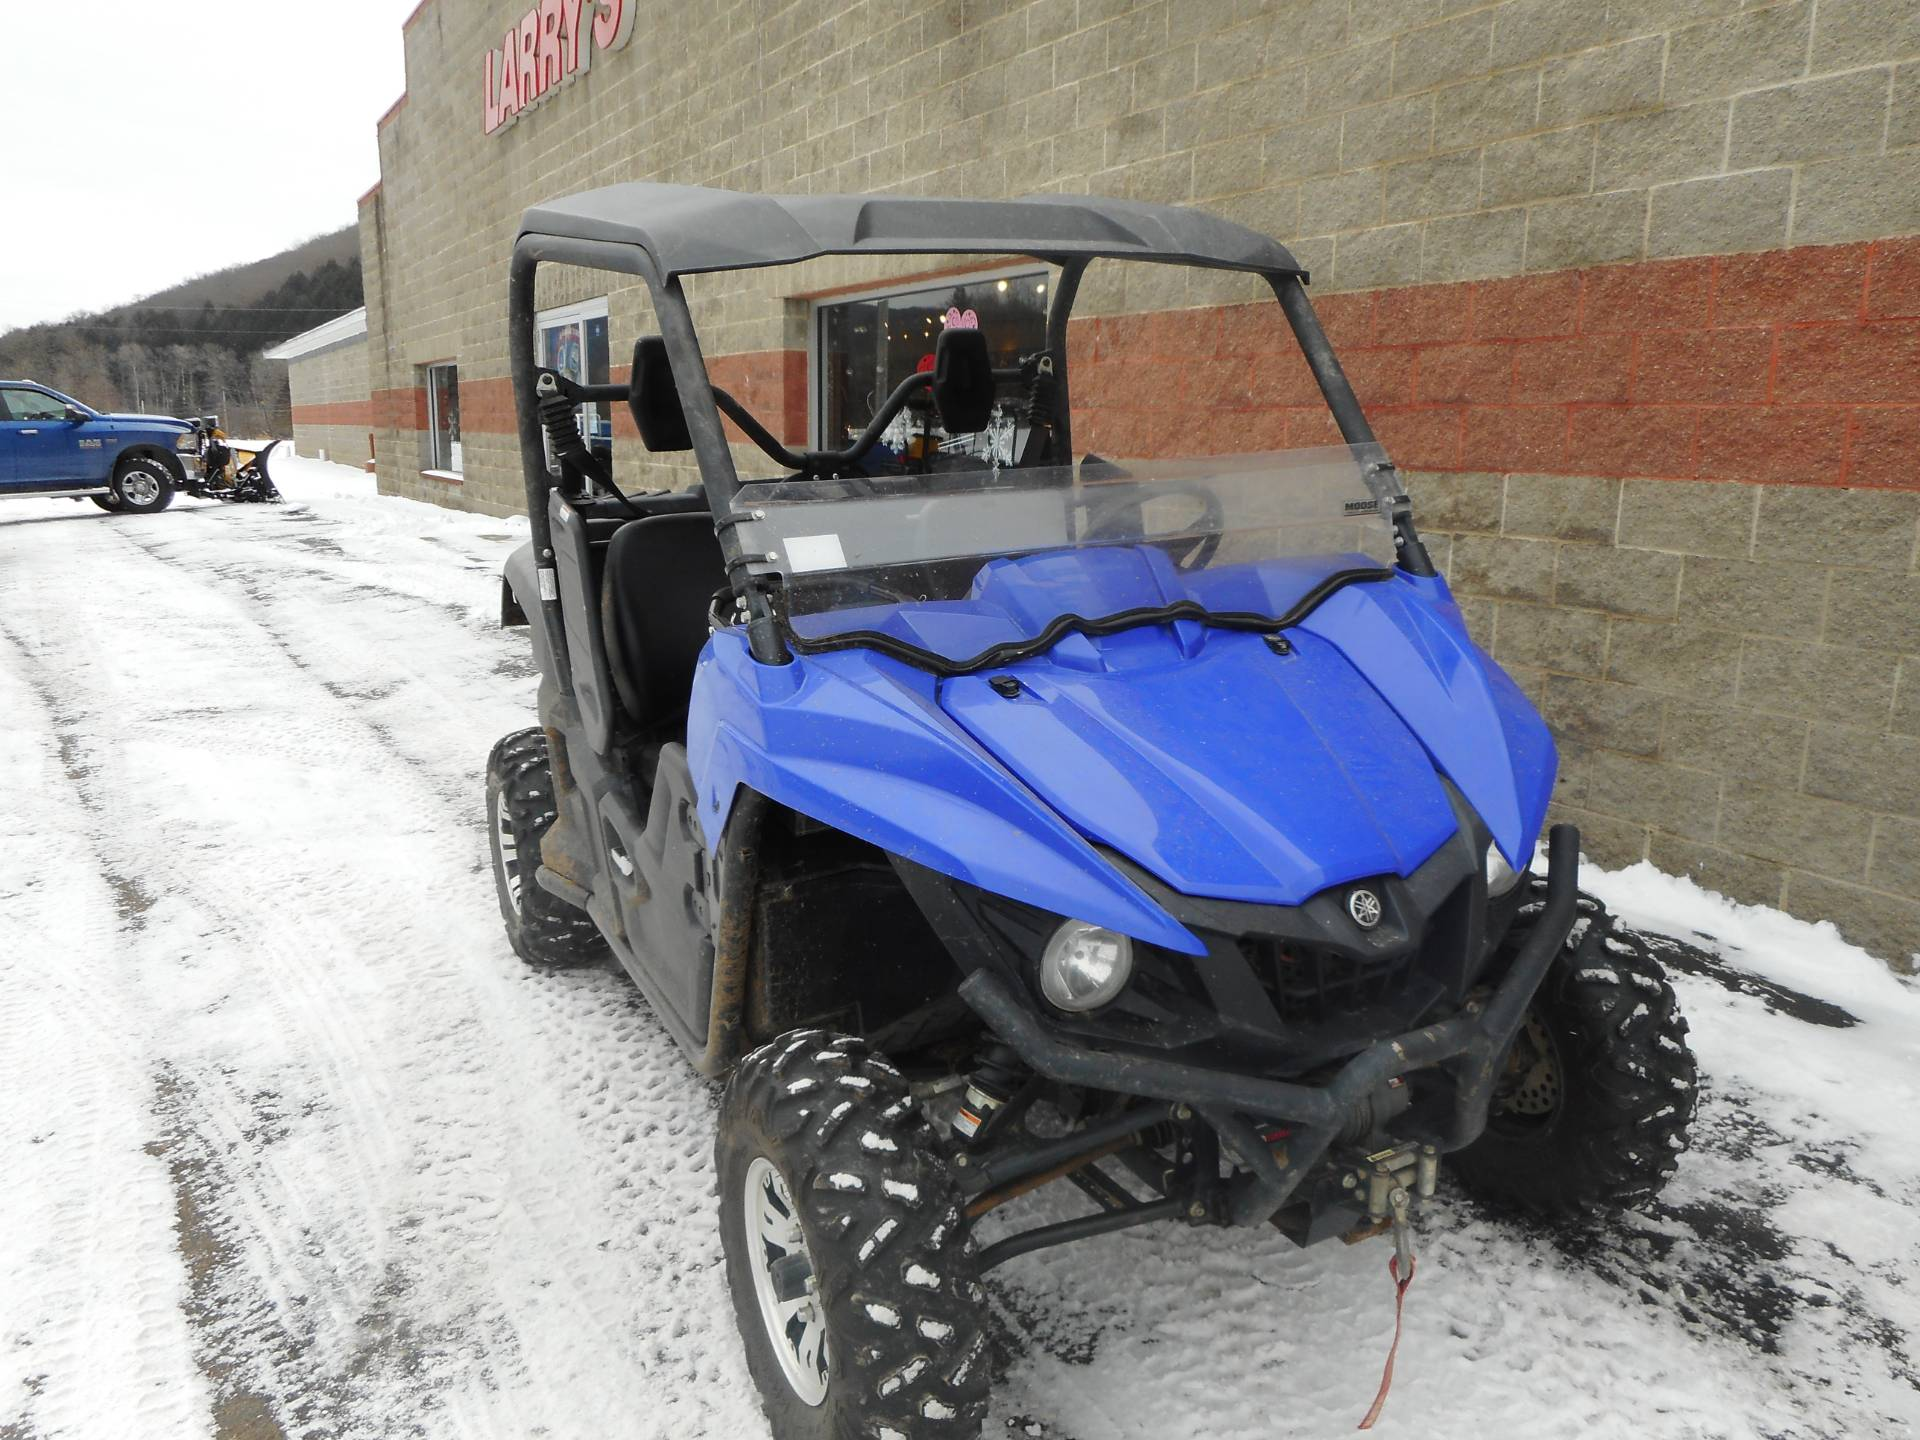 2017 Yamaha Wolverine EPS in Galeton, Pennsylvania - Photo 2